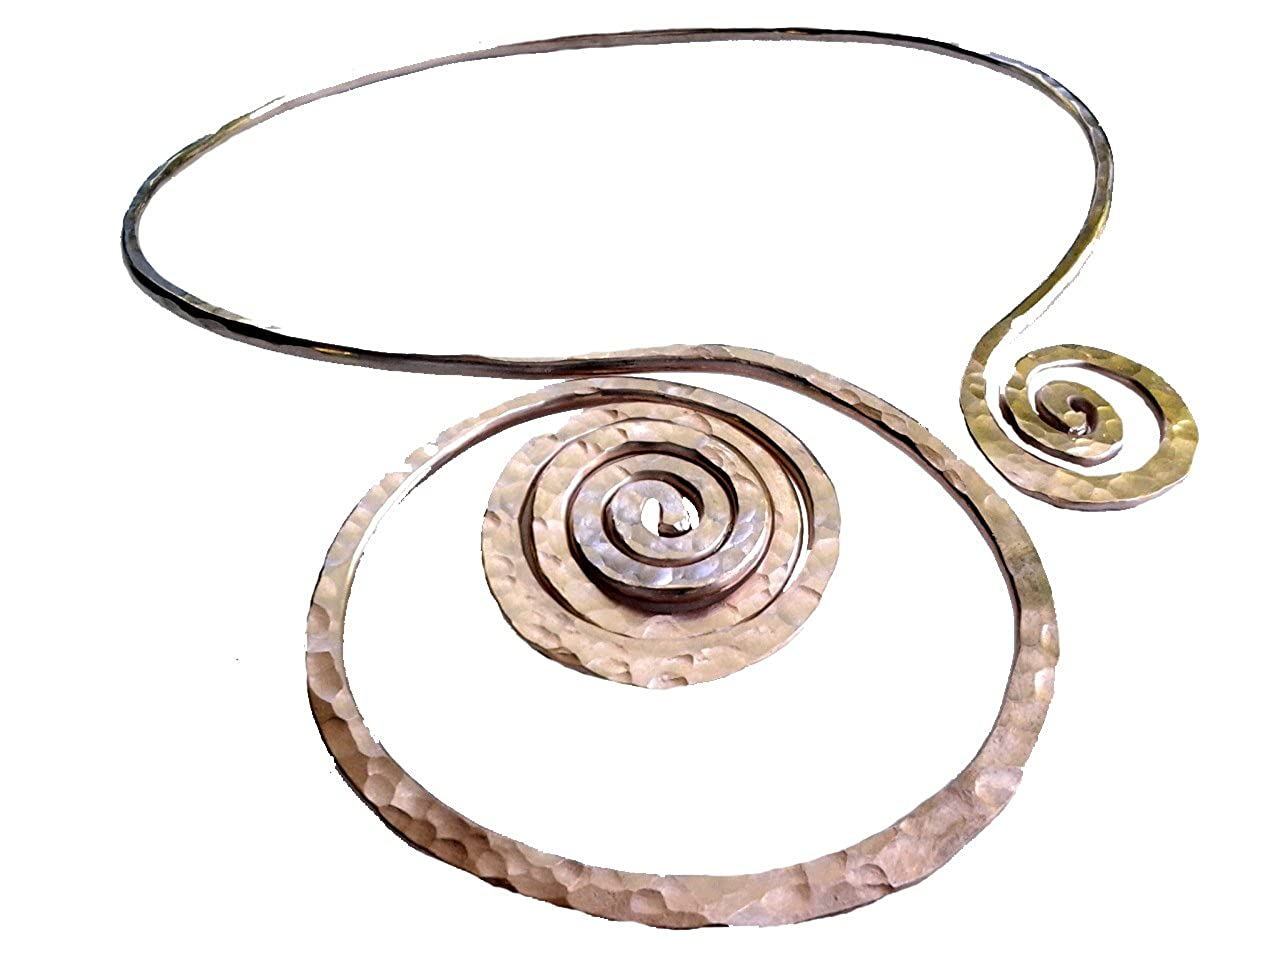 Elaments Design Solid Copper Chakra Collar Necklace Rising Sunset Design Fits Neck Sizes 13-15 Inches